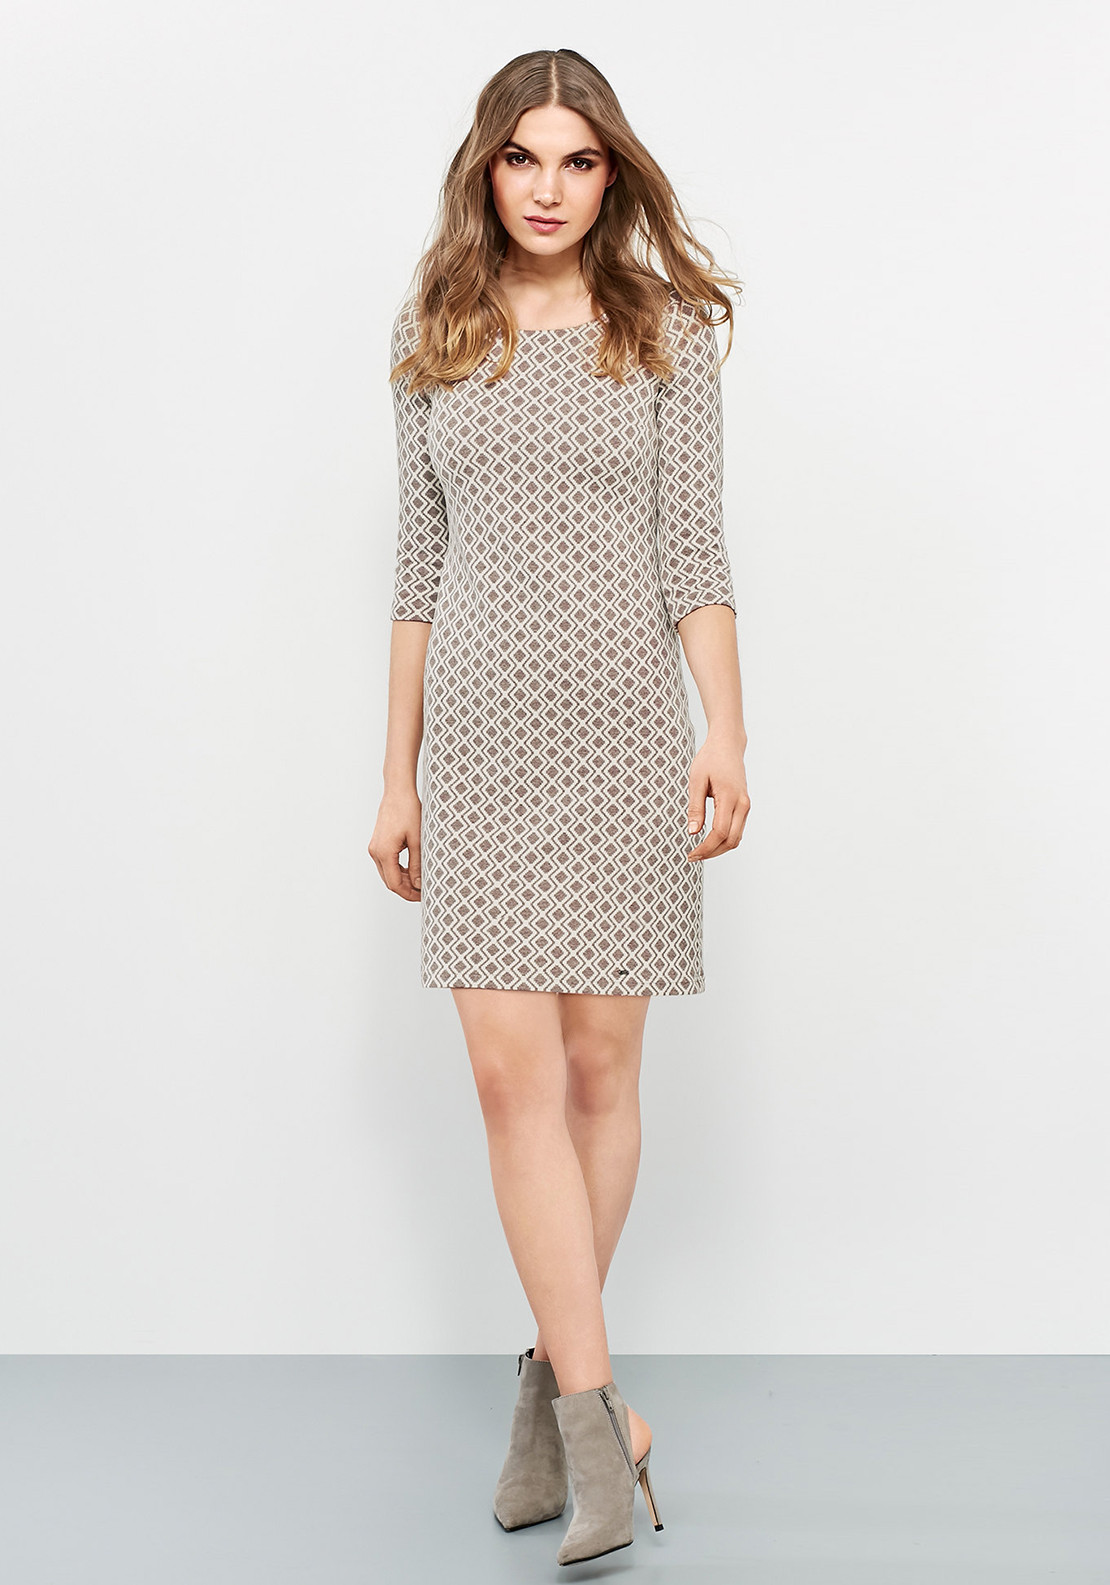 Taifun Jacquard Print Knit Dress, Taupe